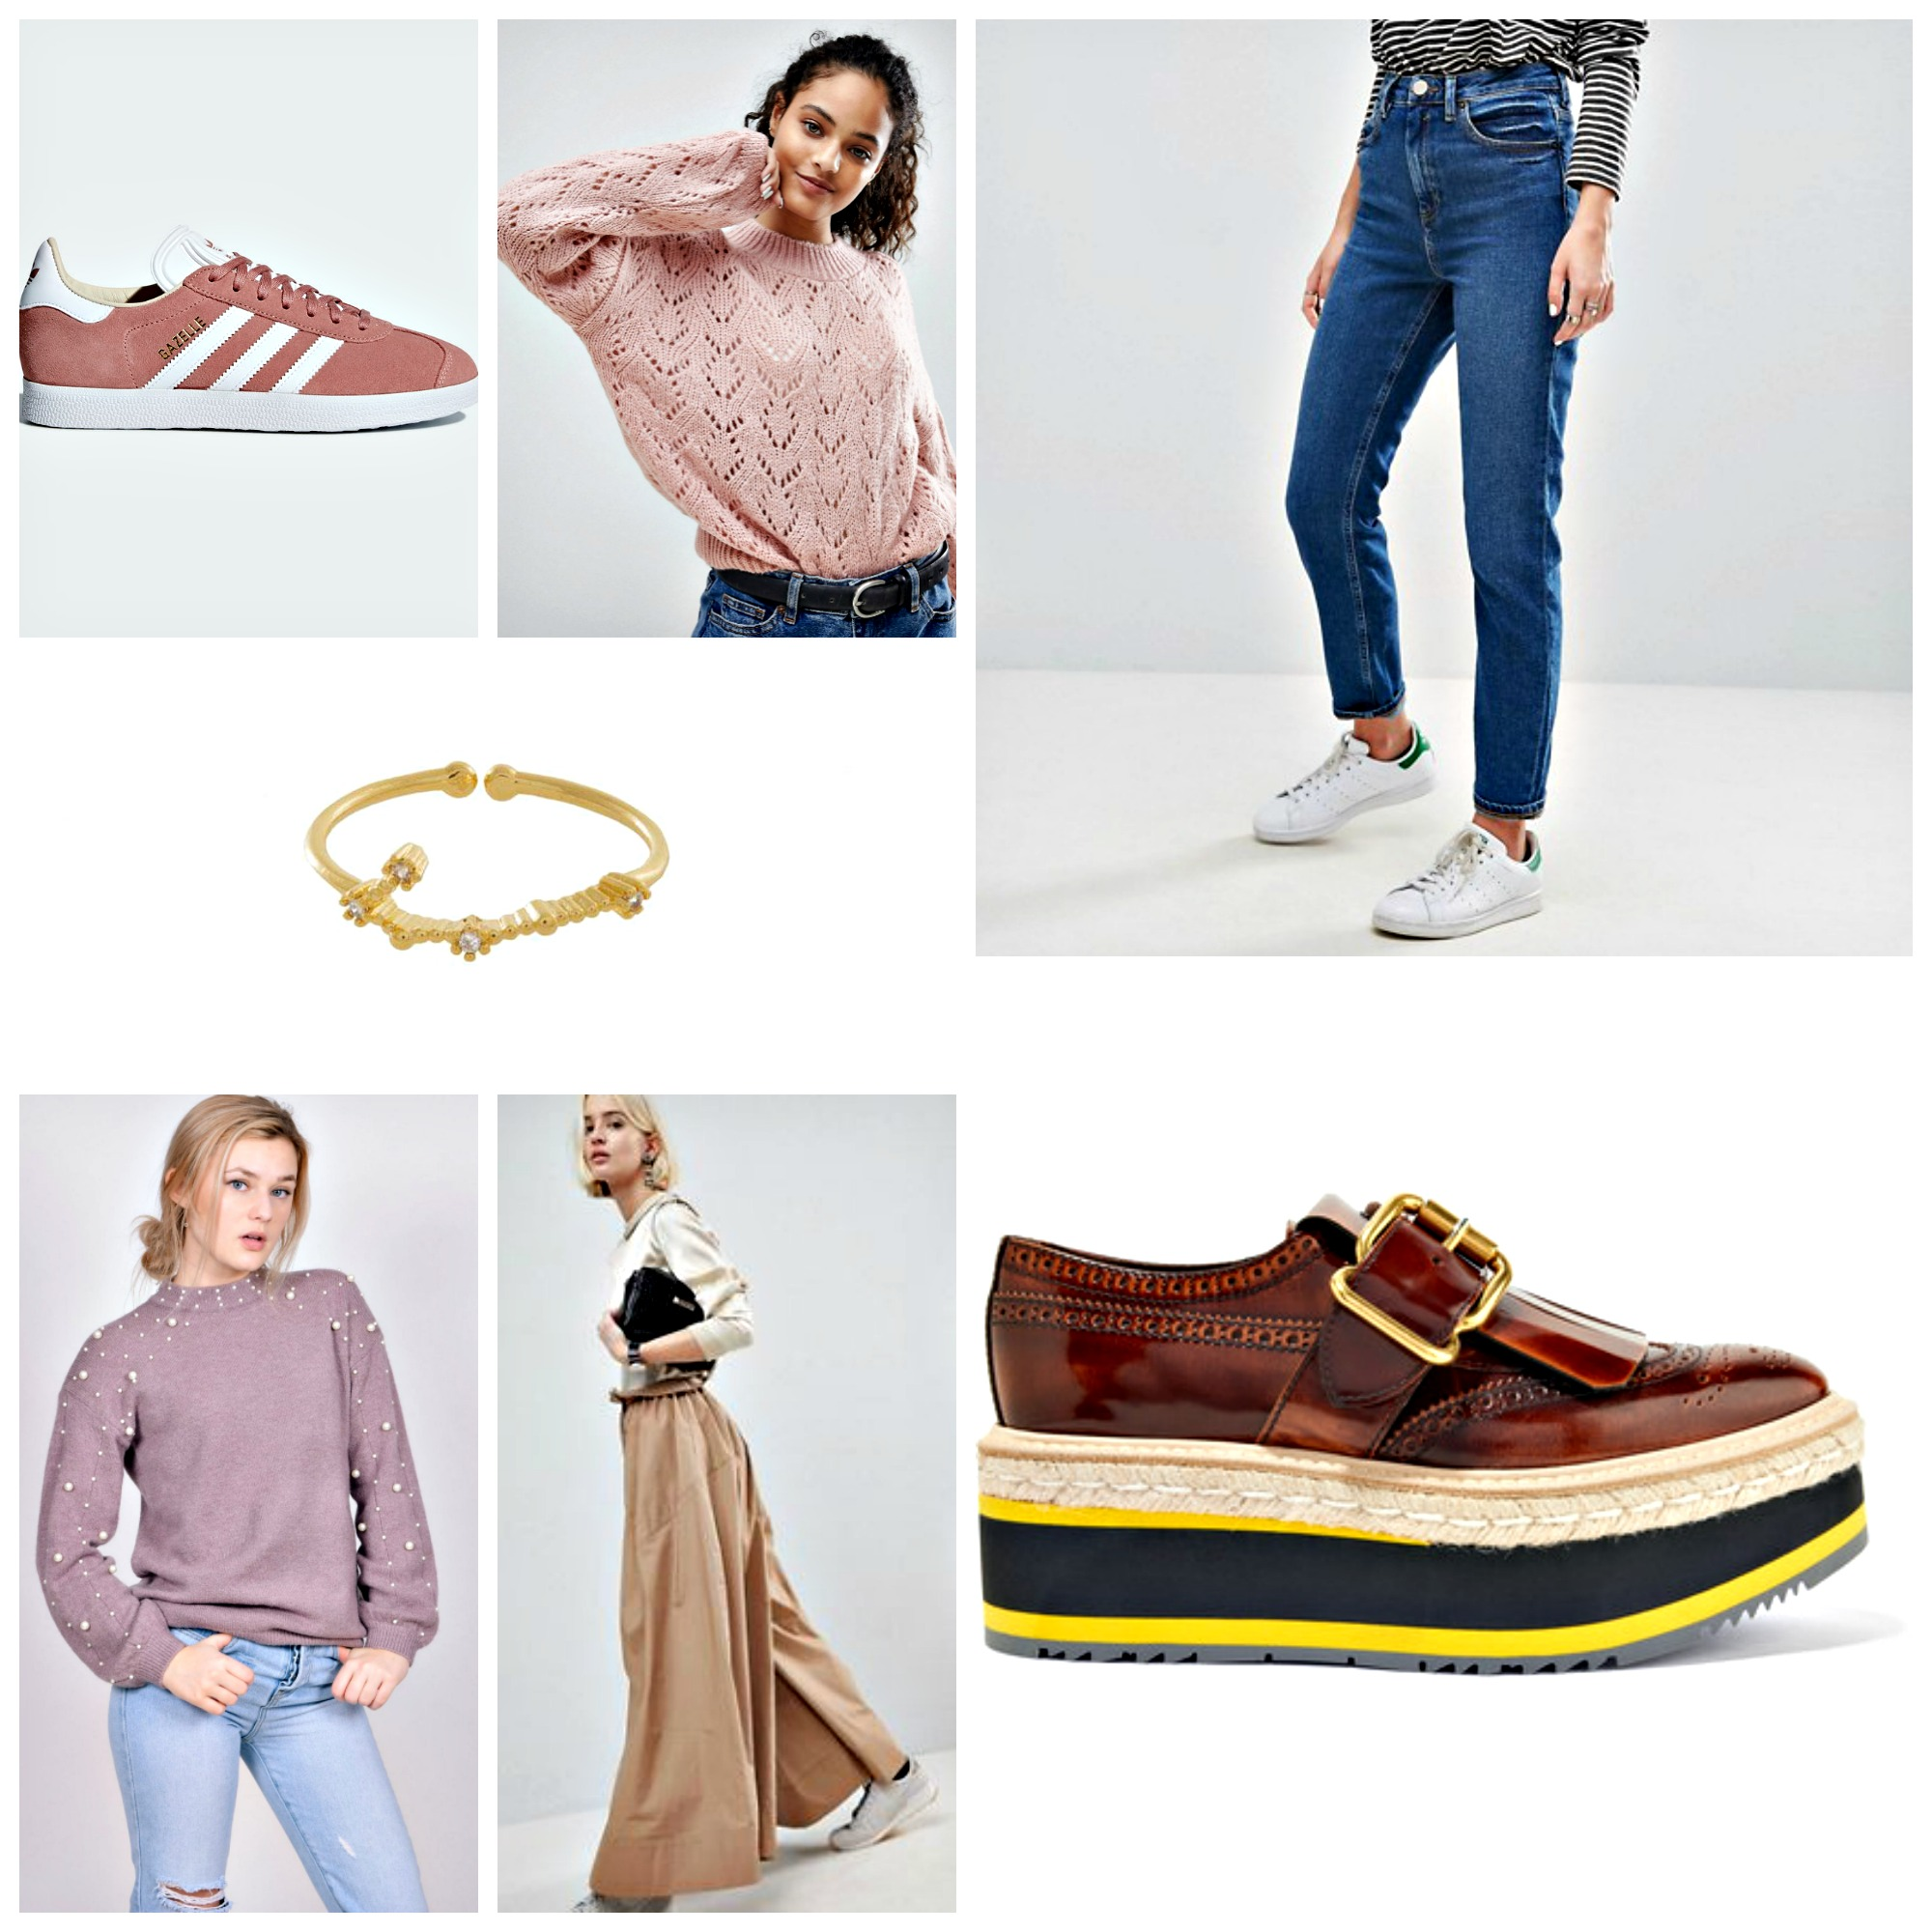 From top left to right clockwise: Adidas Original Gazelle, Nobody's Child Relaxed Textured Knit Jumper, Asos Farleigh Mom Jeans, Prada Platform Brogues, Asos WHITE High Waist Wide Leg Trouser, Mod & Soul Lavender Pearl Sweater Wanderlust & Co Gemini Zodiac Ring in Gold